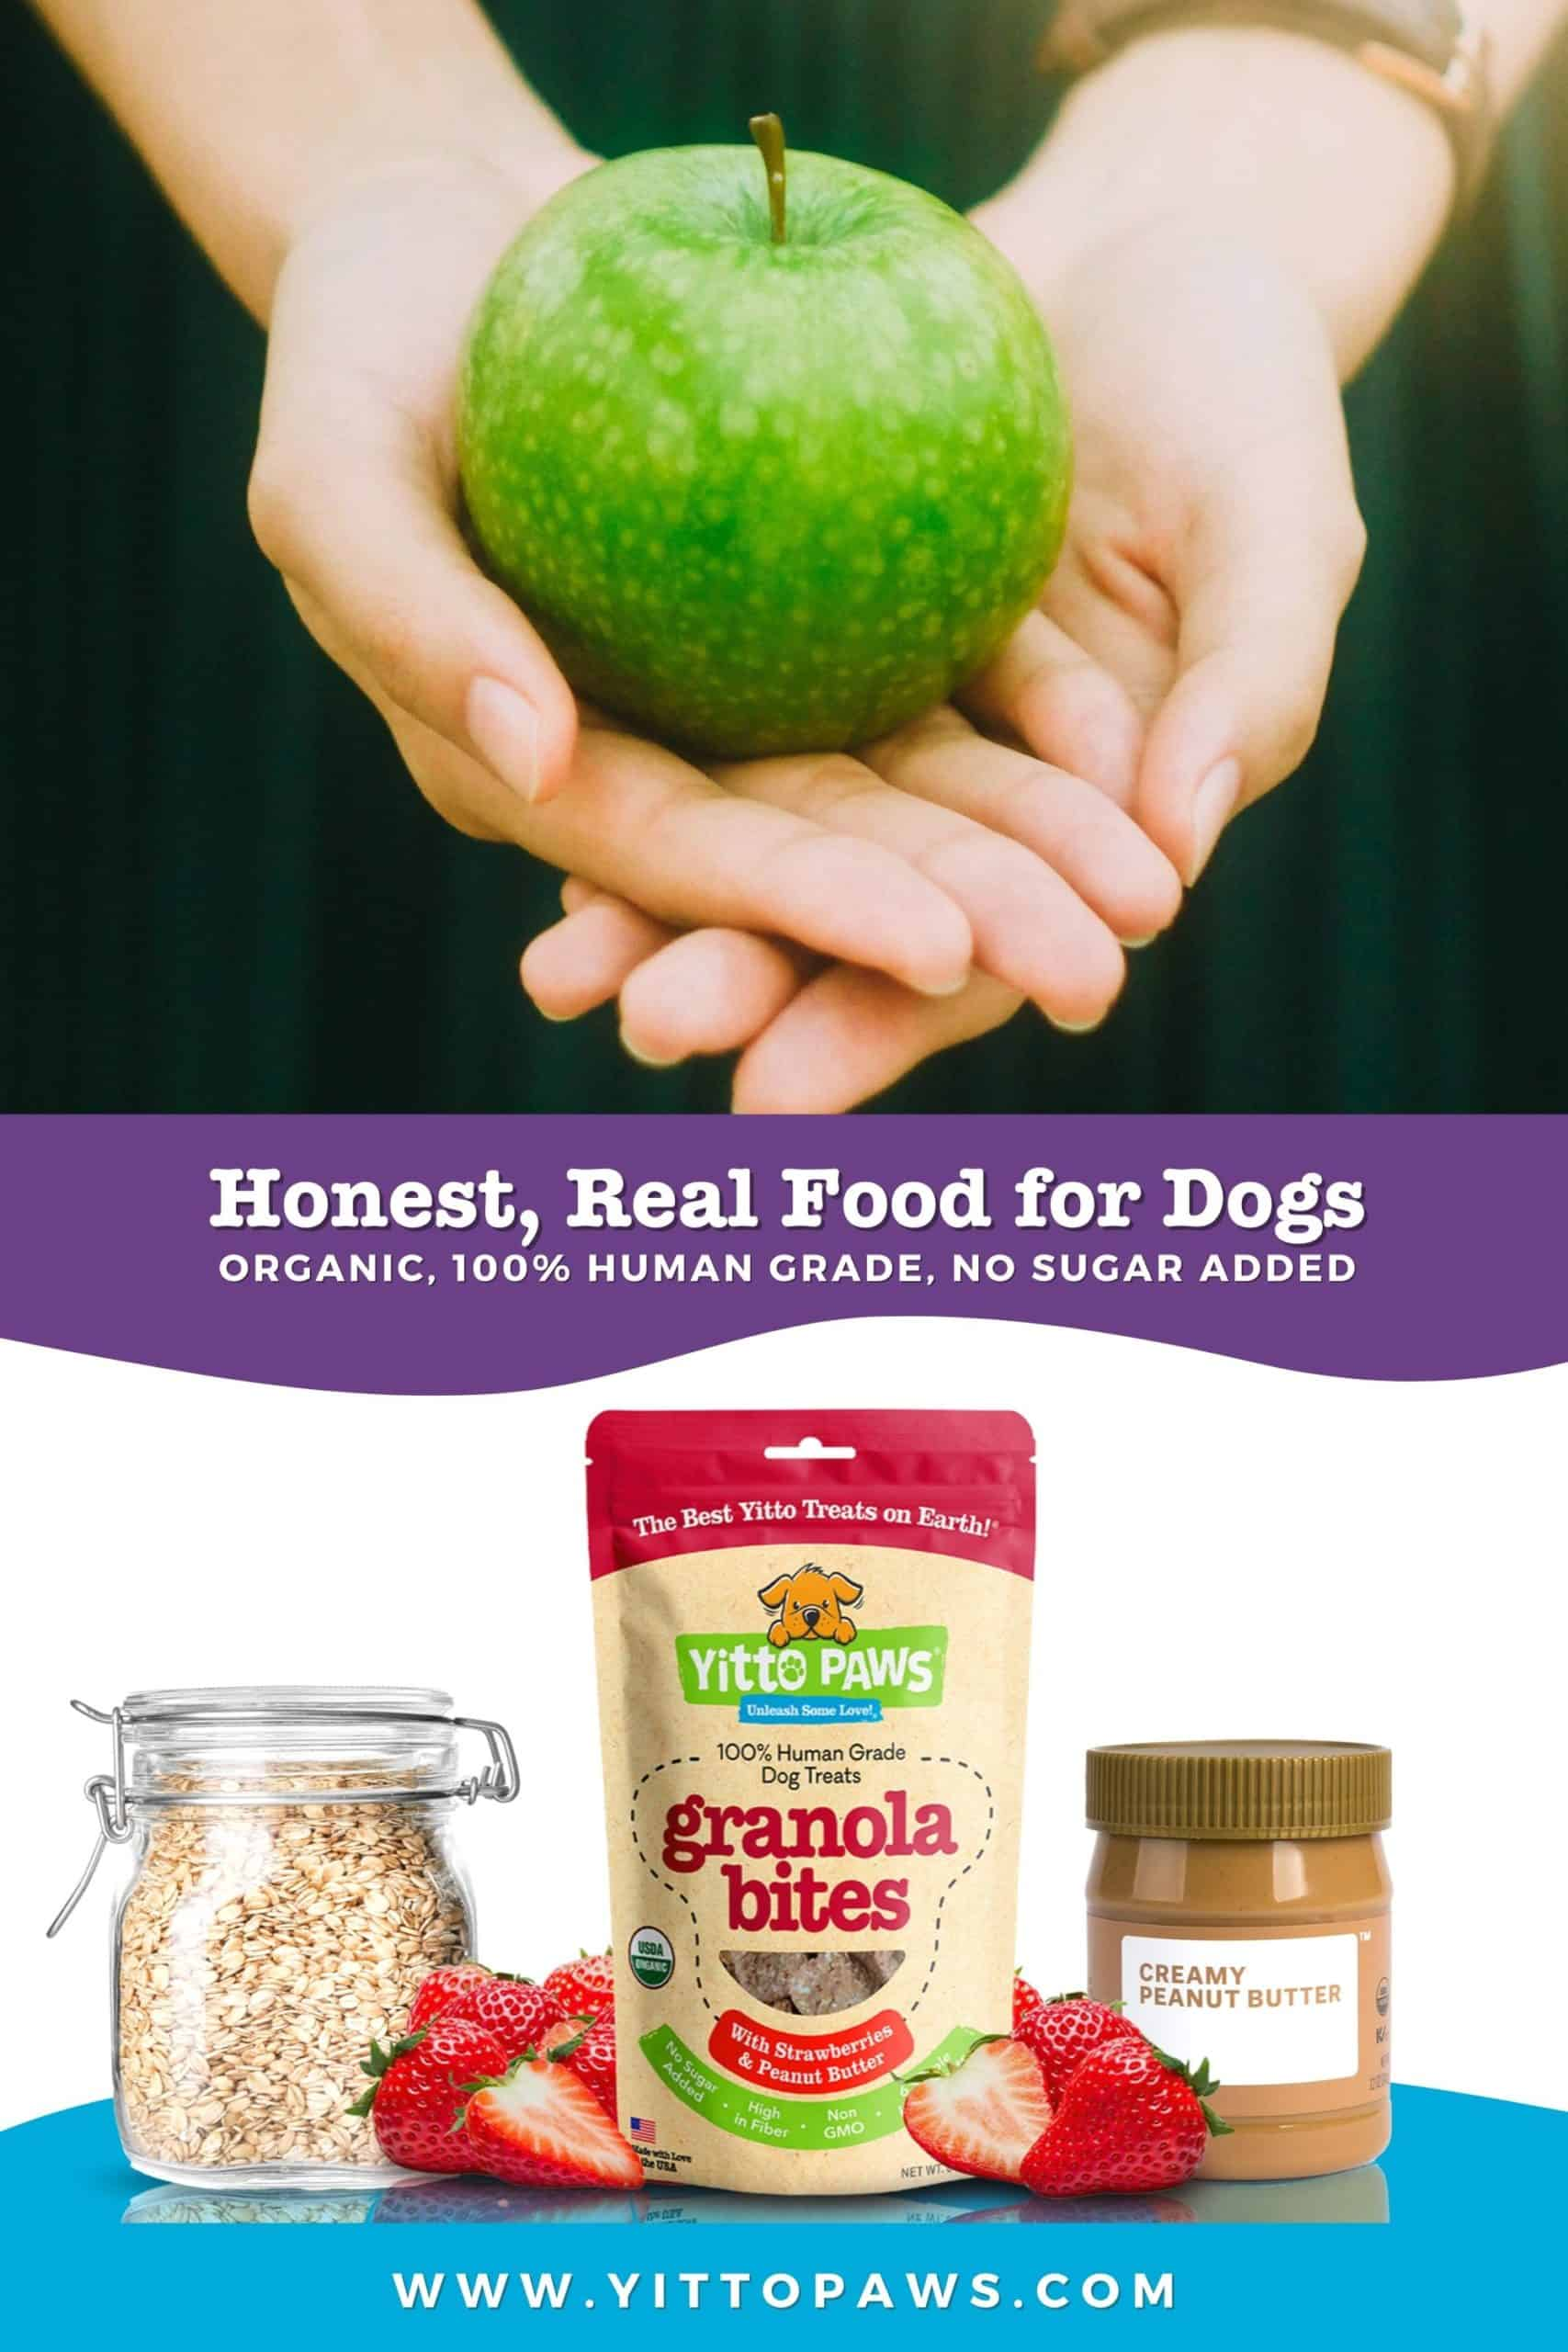 Honest, Real Food for Dogs. Organic. 100% Human Grade. No Sugar Added. Simple Ingredients.